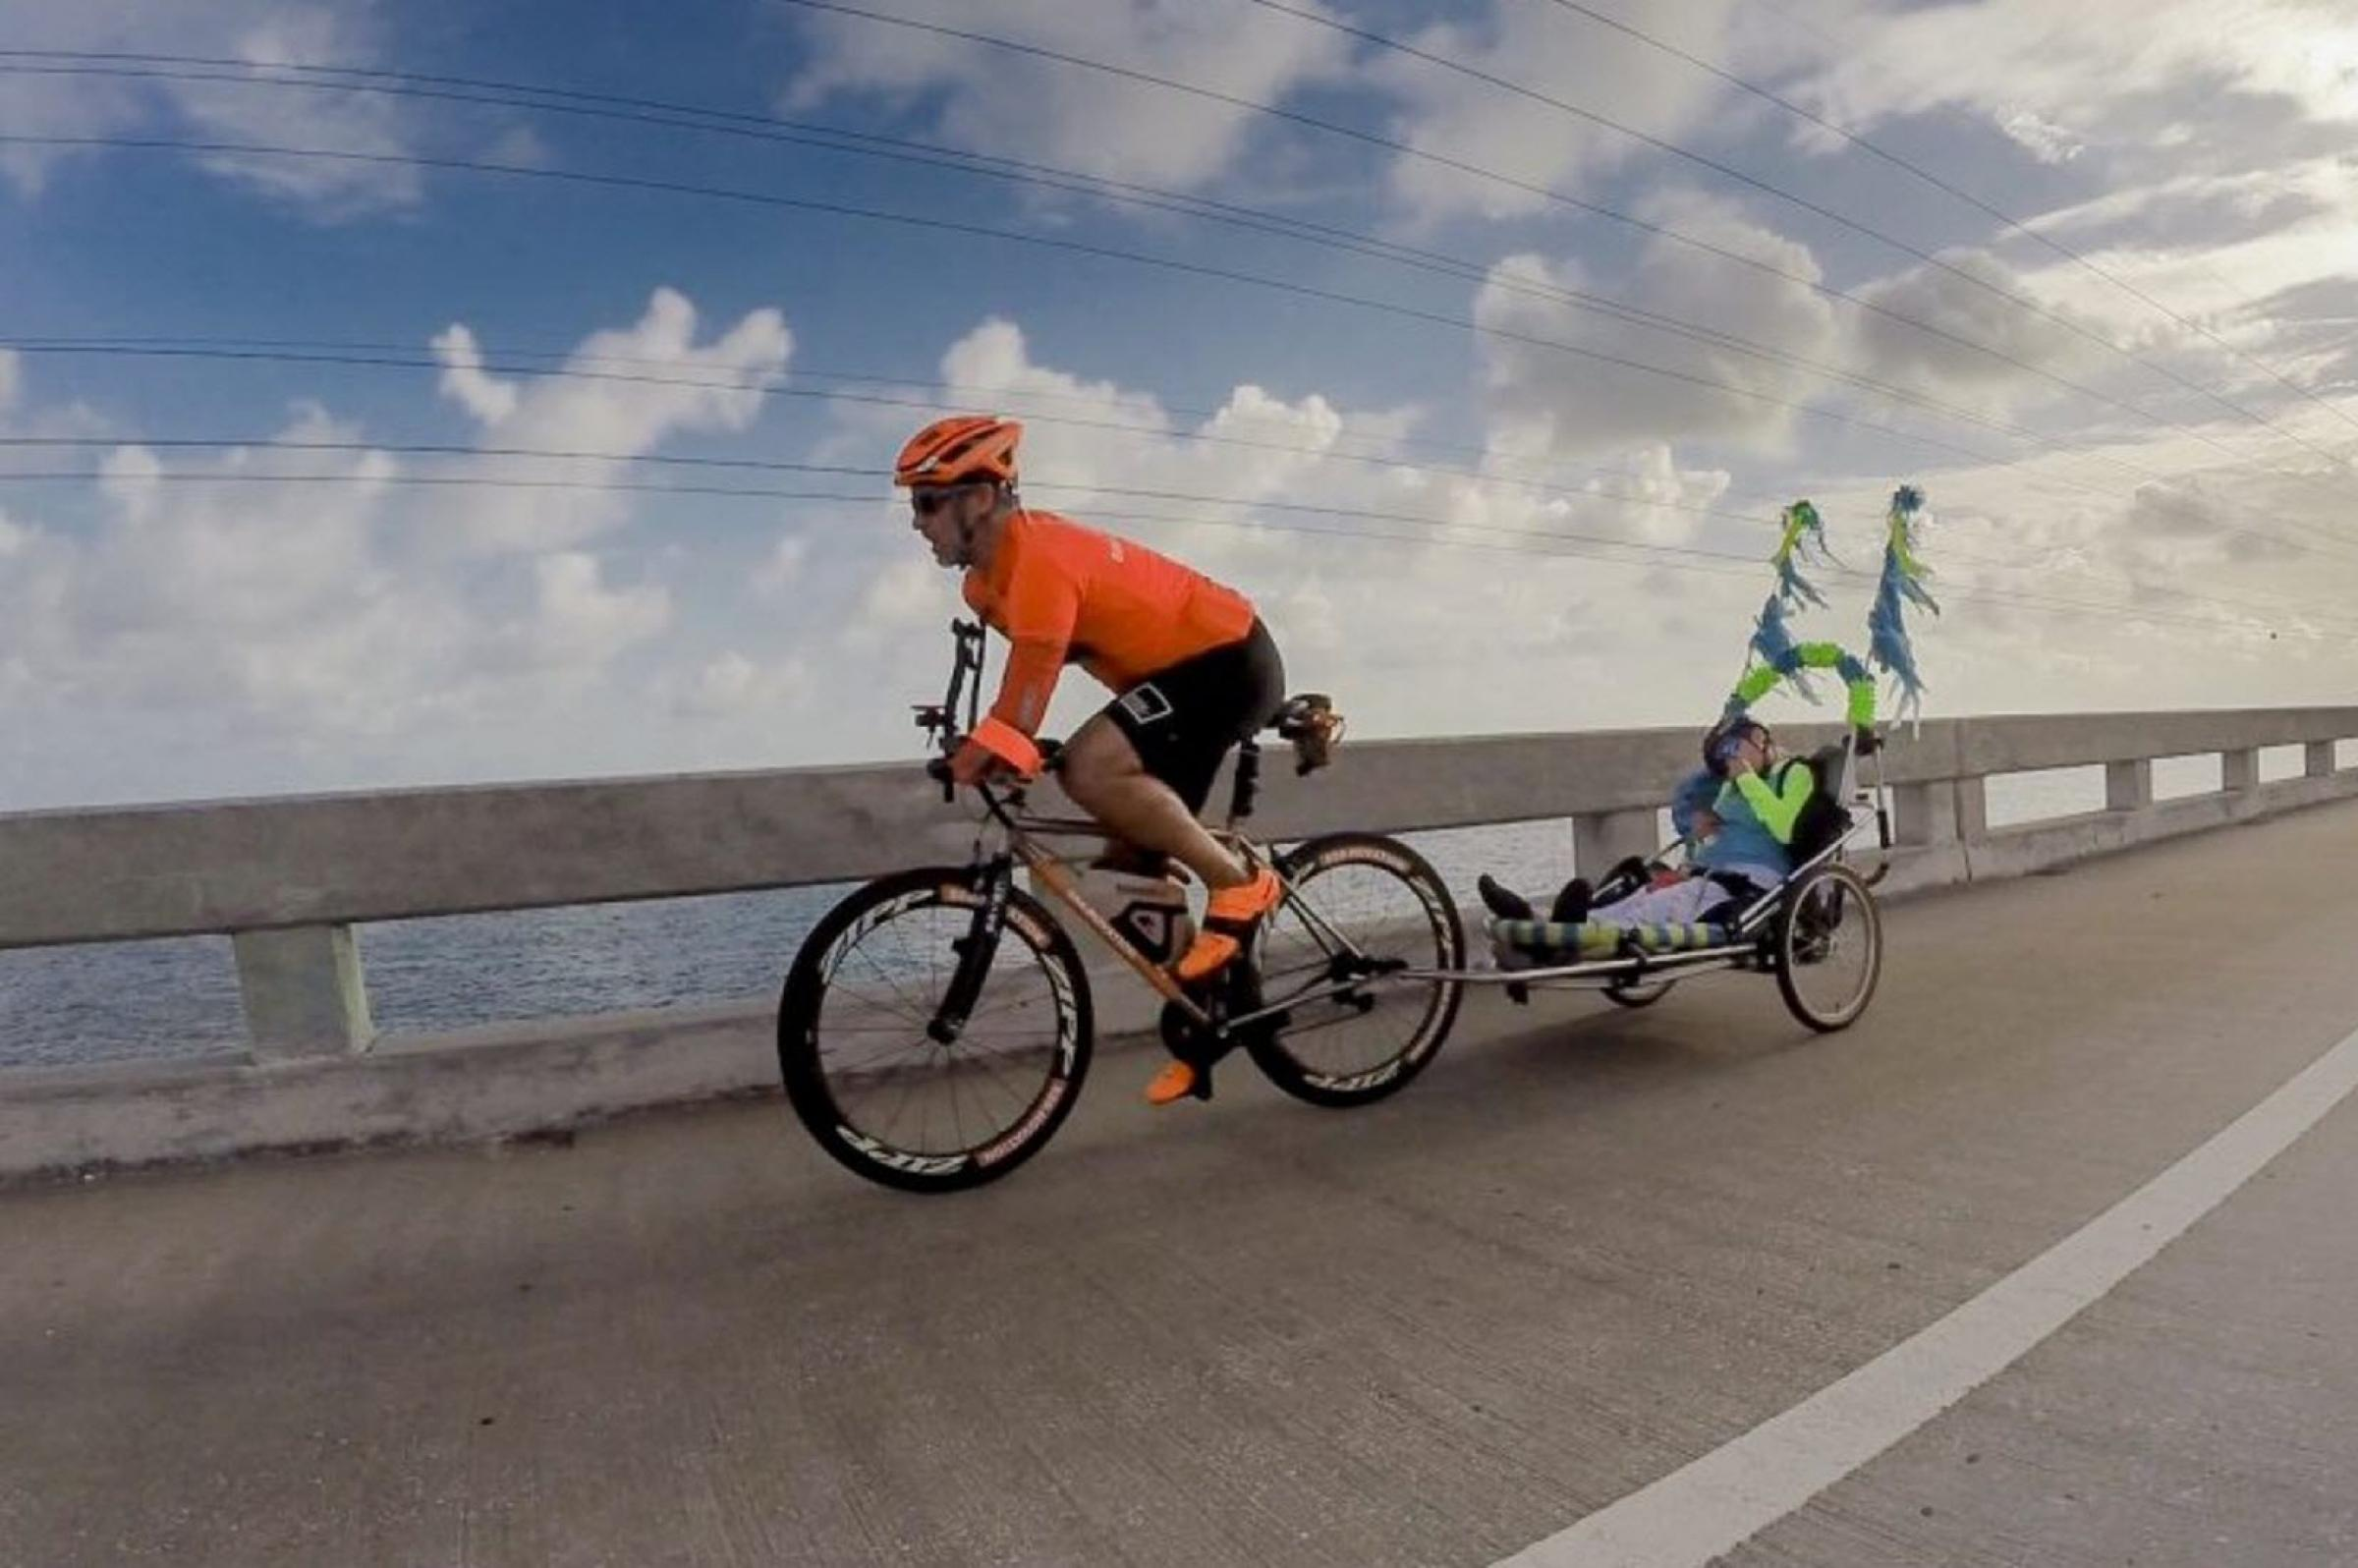 Hector and Kerry make up a dynamic racing team as they work together to complete a 50-mile cycling race through the Florida Keys